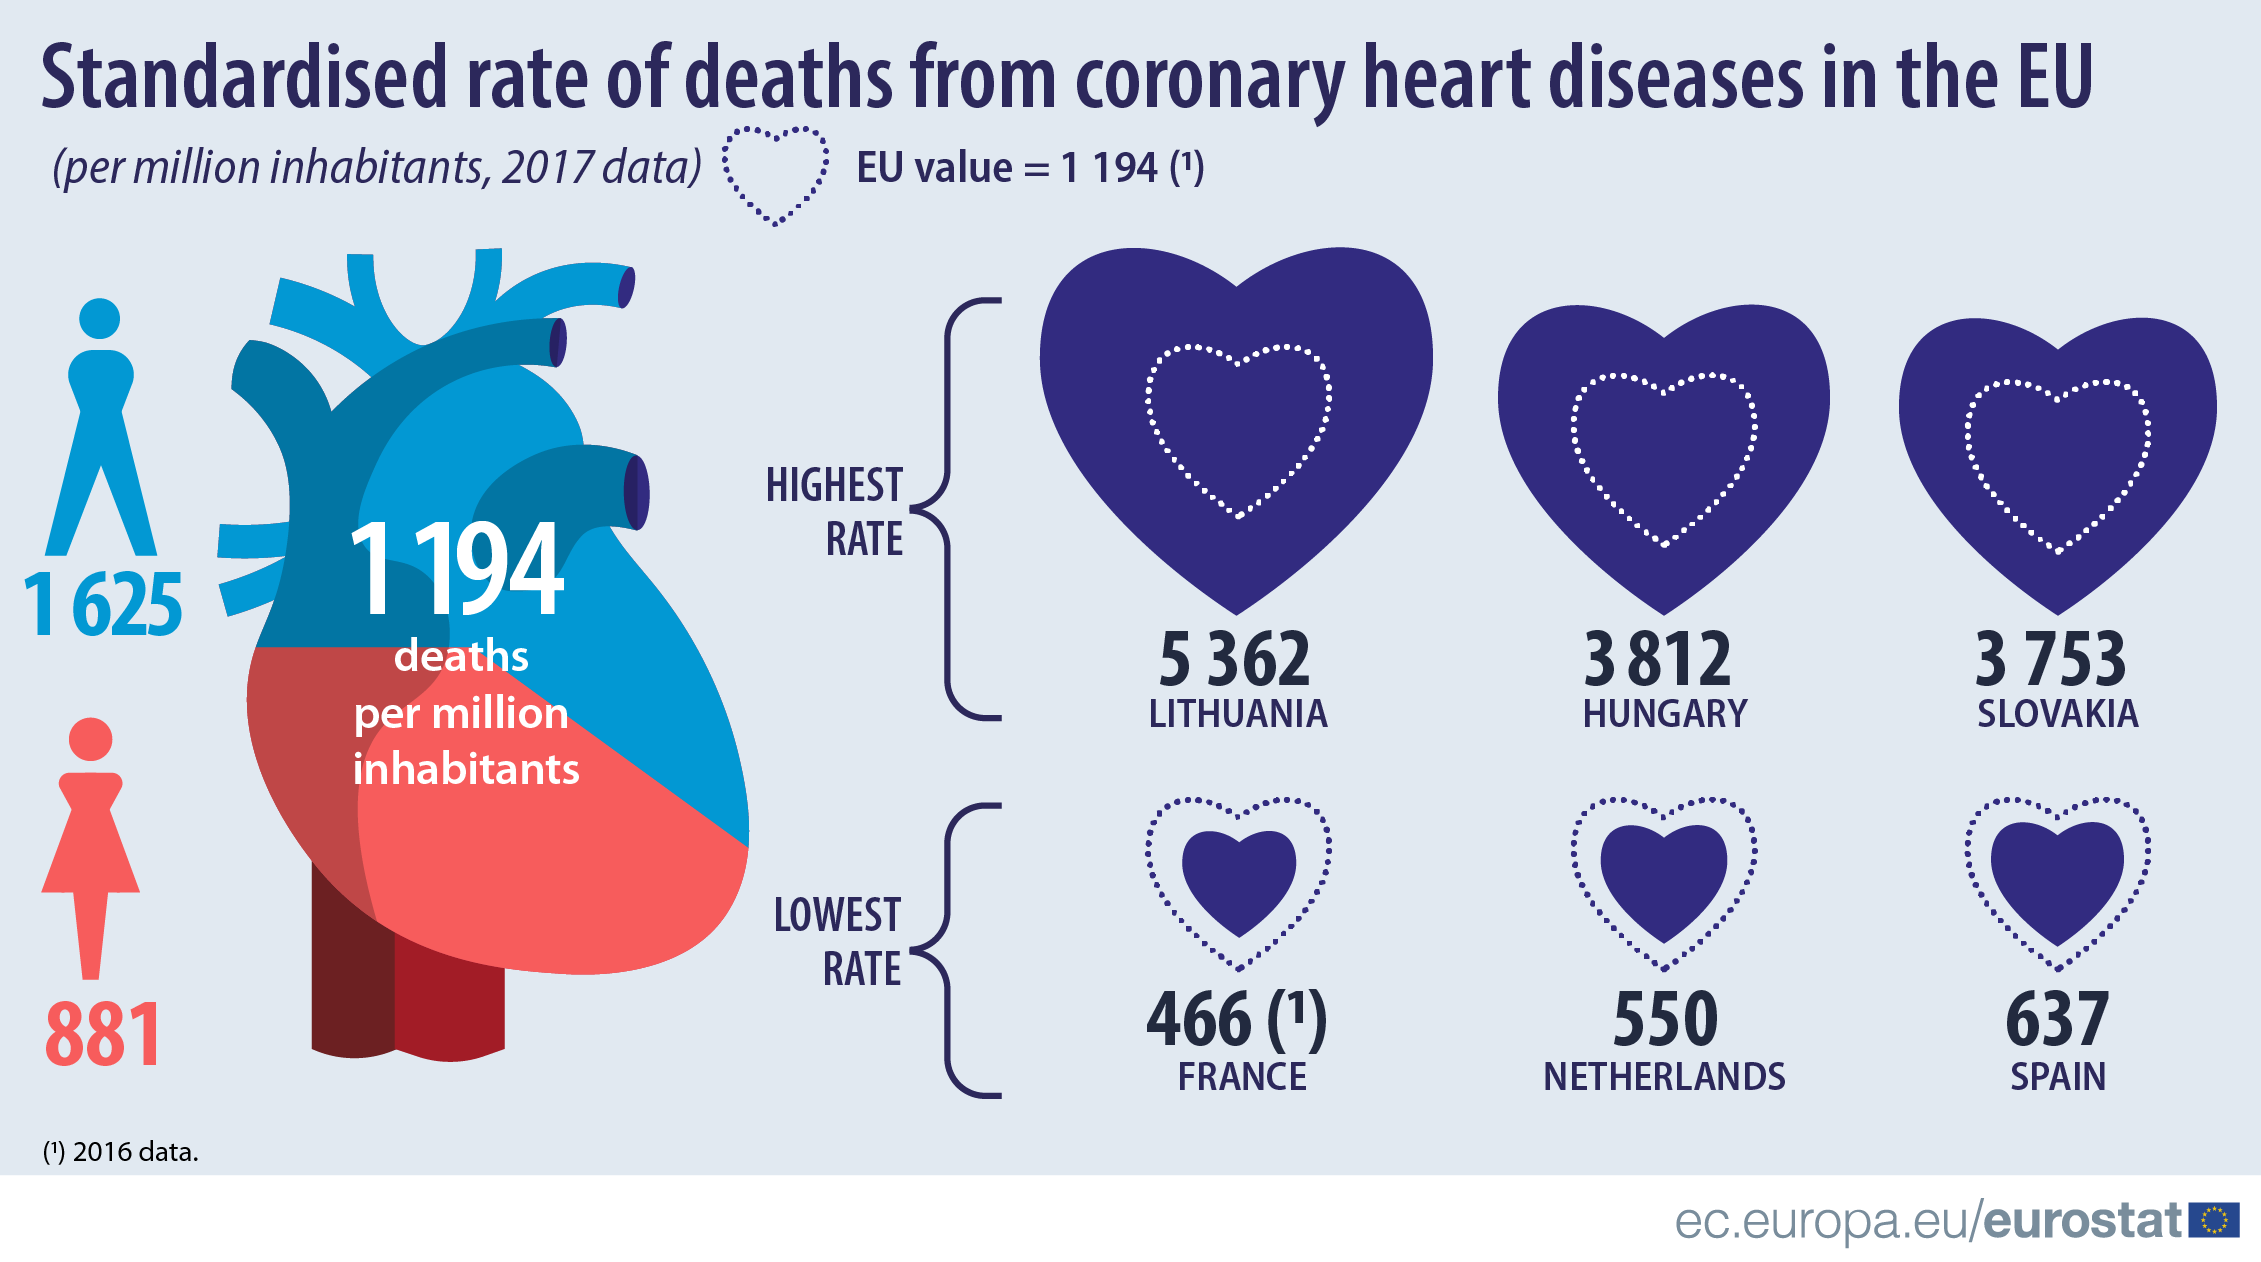 Infographic: Standardised rate of deaths from coronary heart diseases in the EU